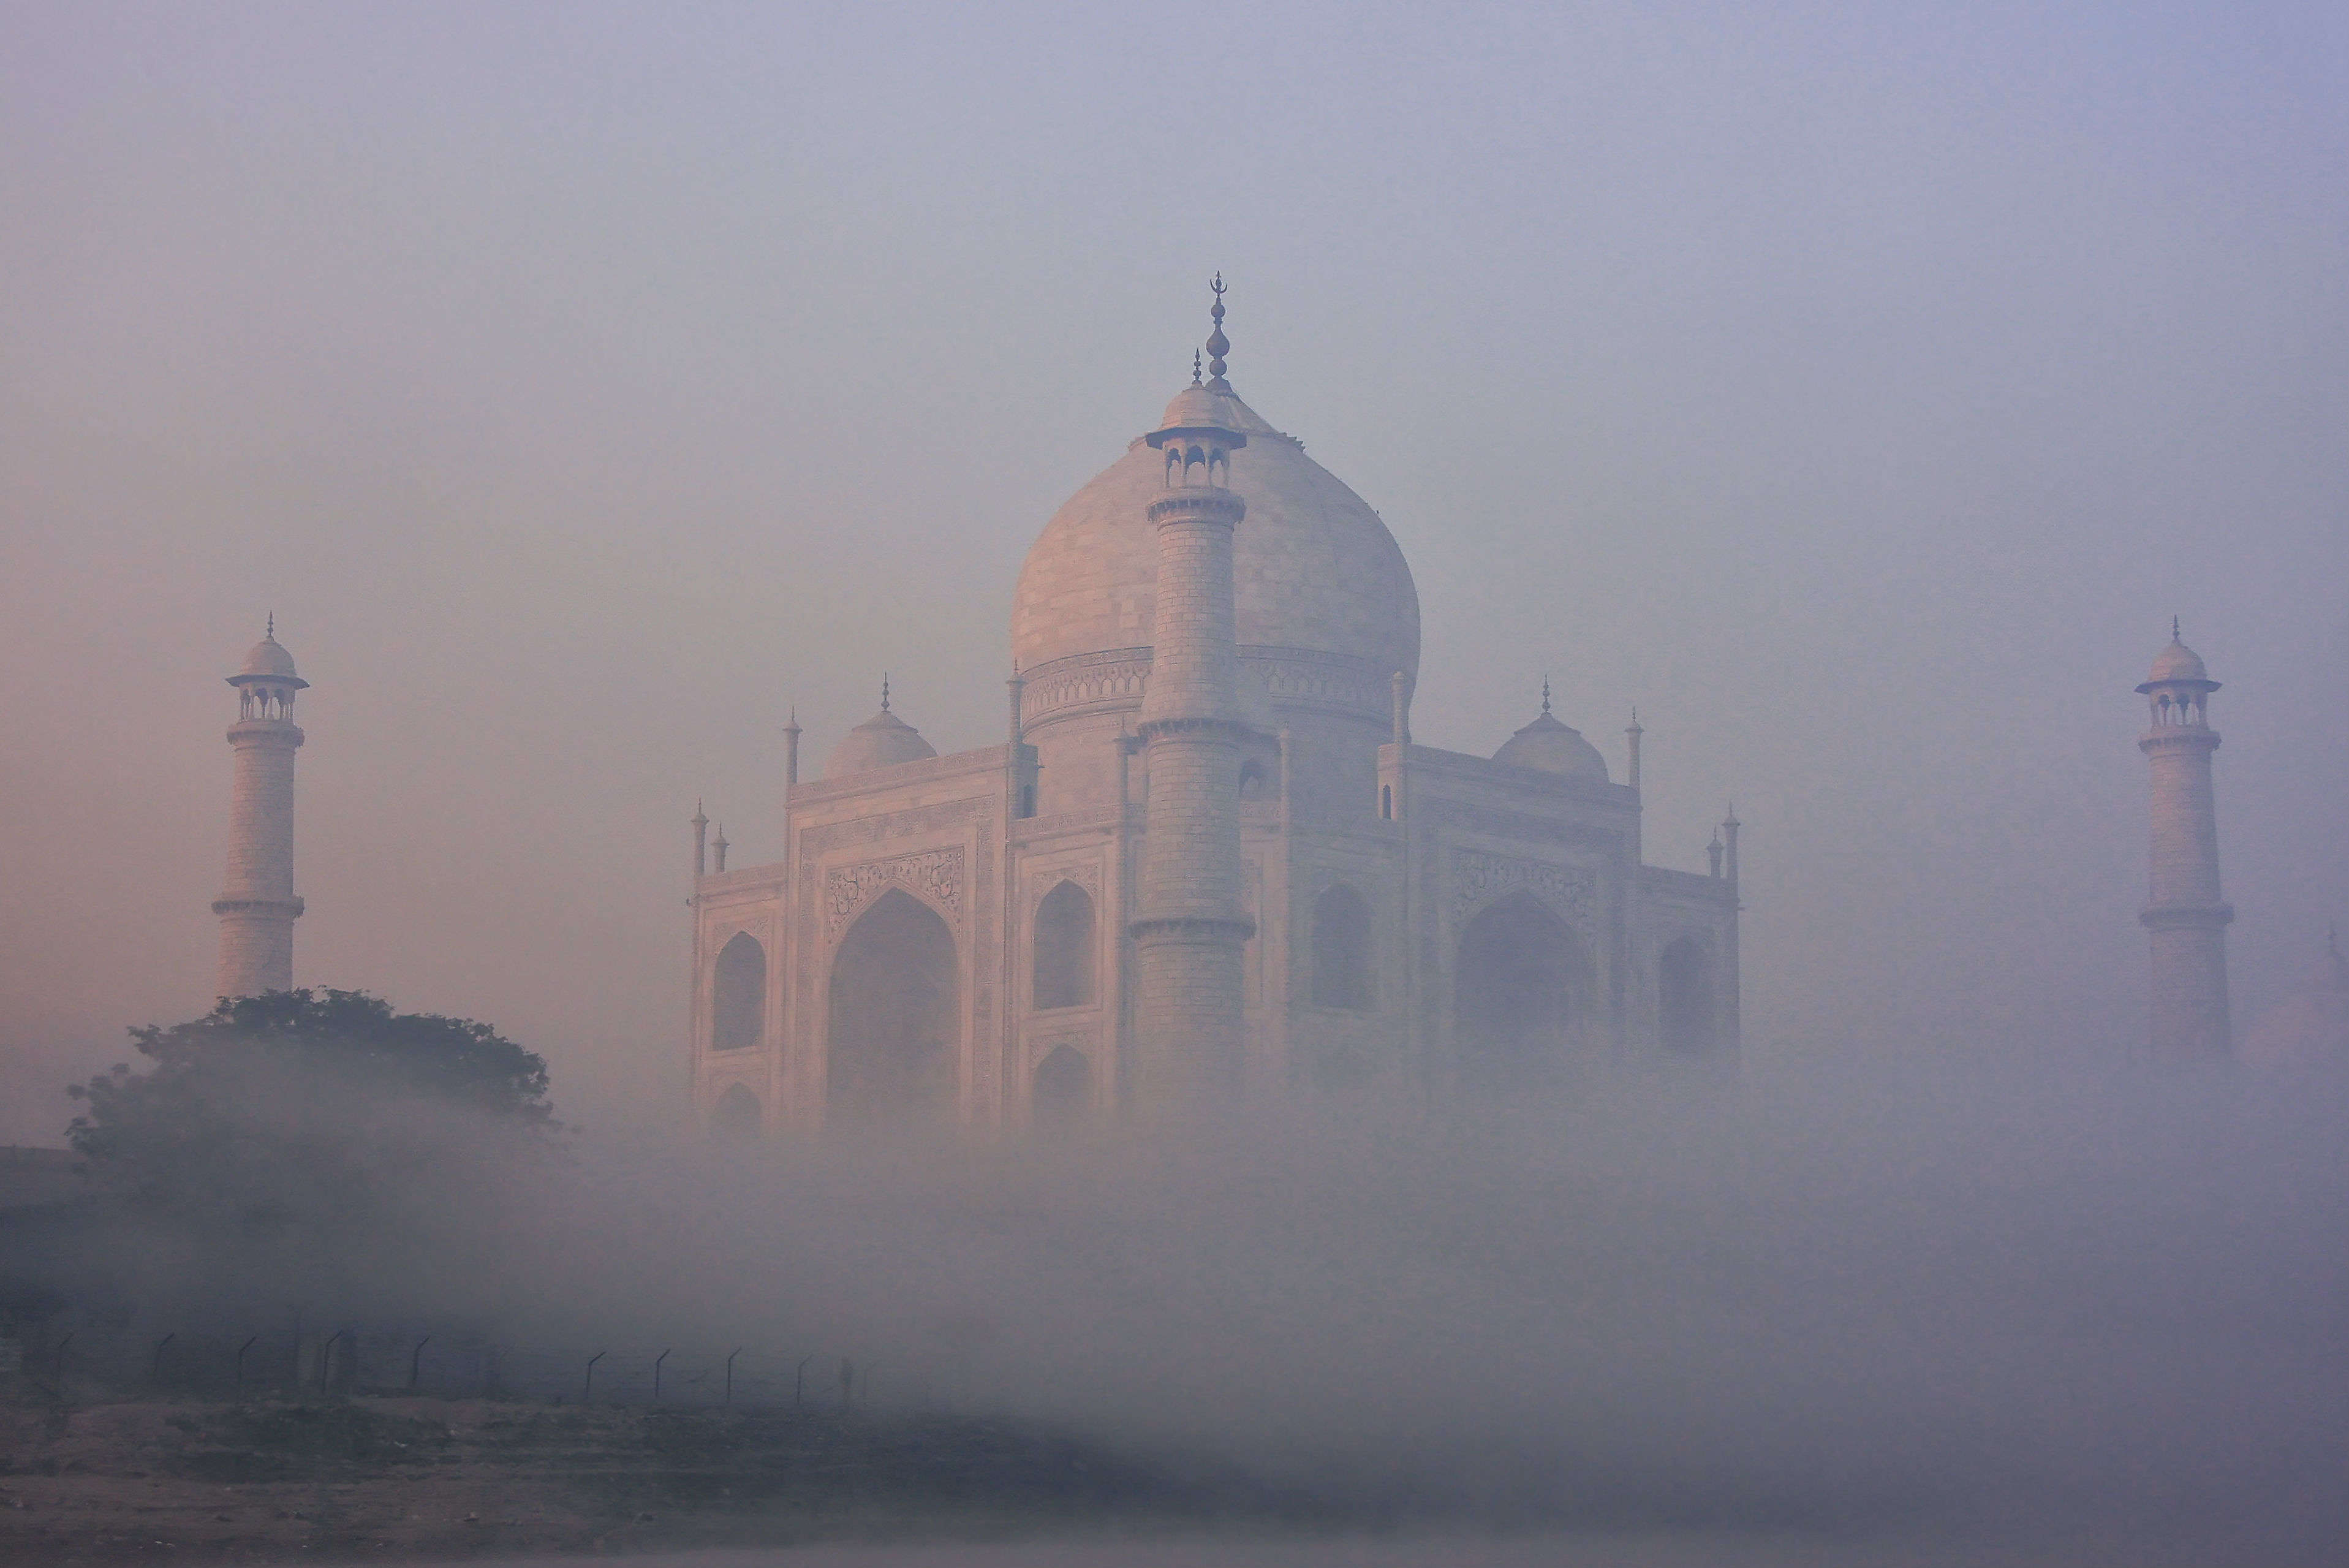 Taj Mahal gets two mobile air purifiers to battle pollution